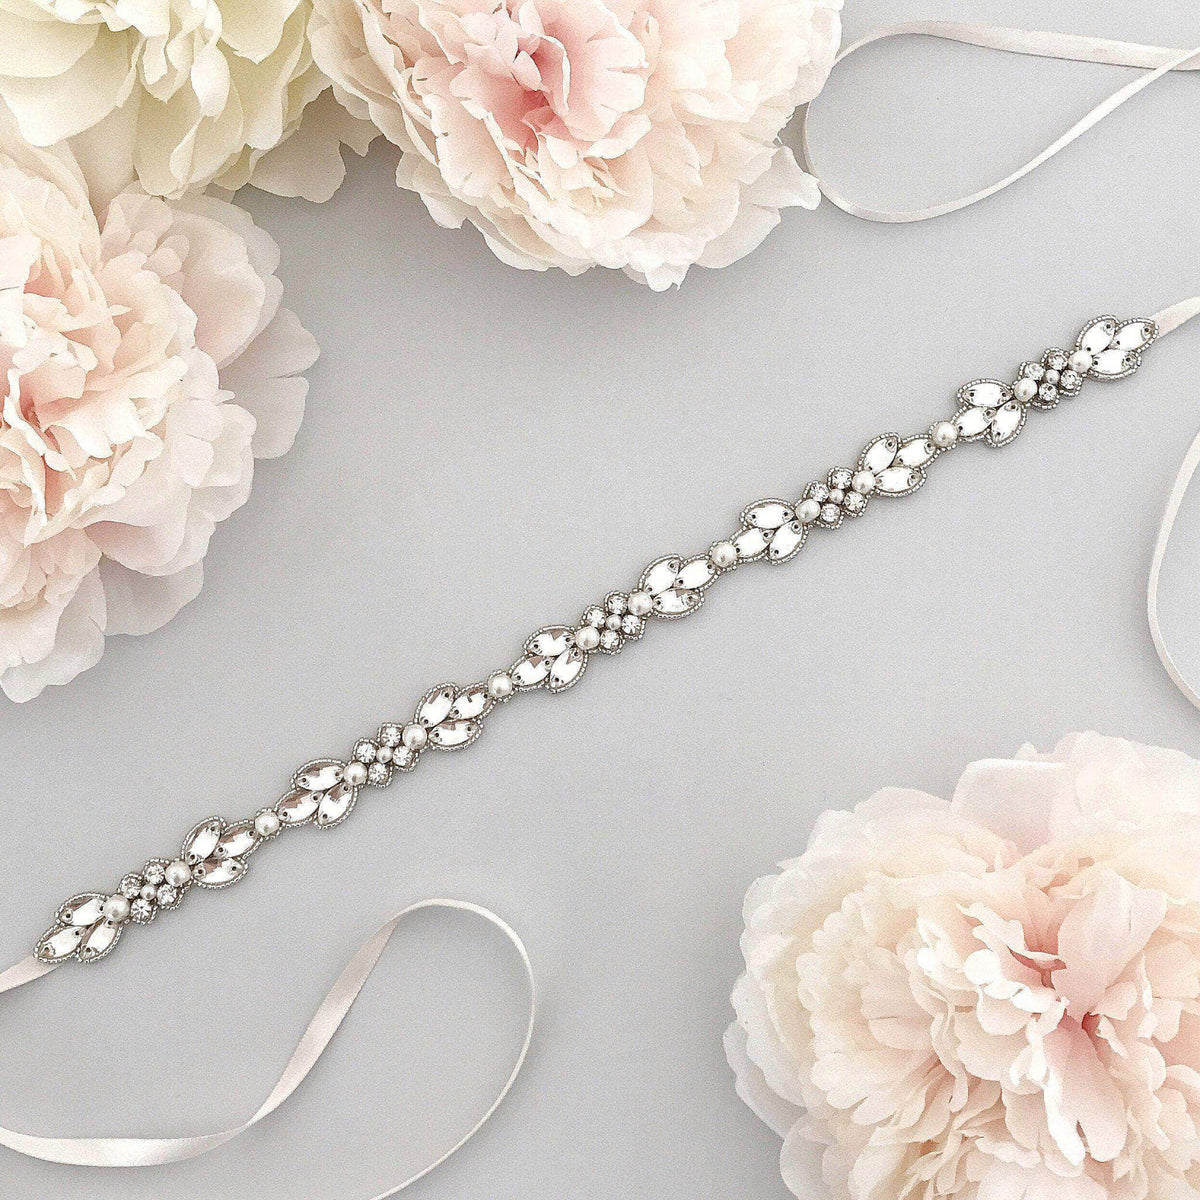 Wedding Belt Silver Crystal and pearl flower wedding belt - 'Evelyn'